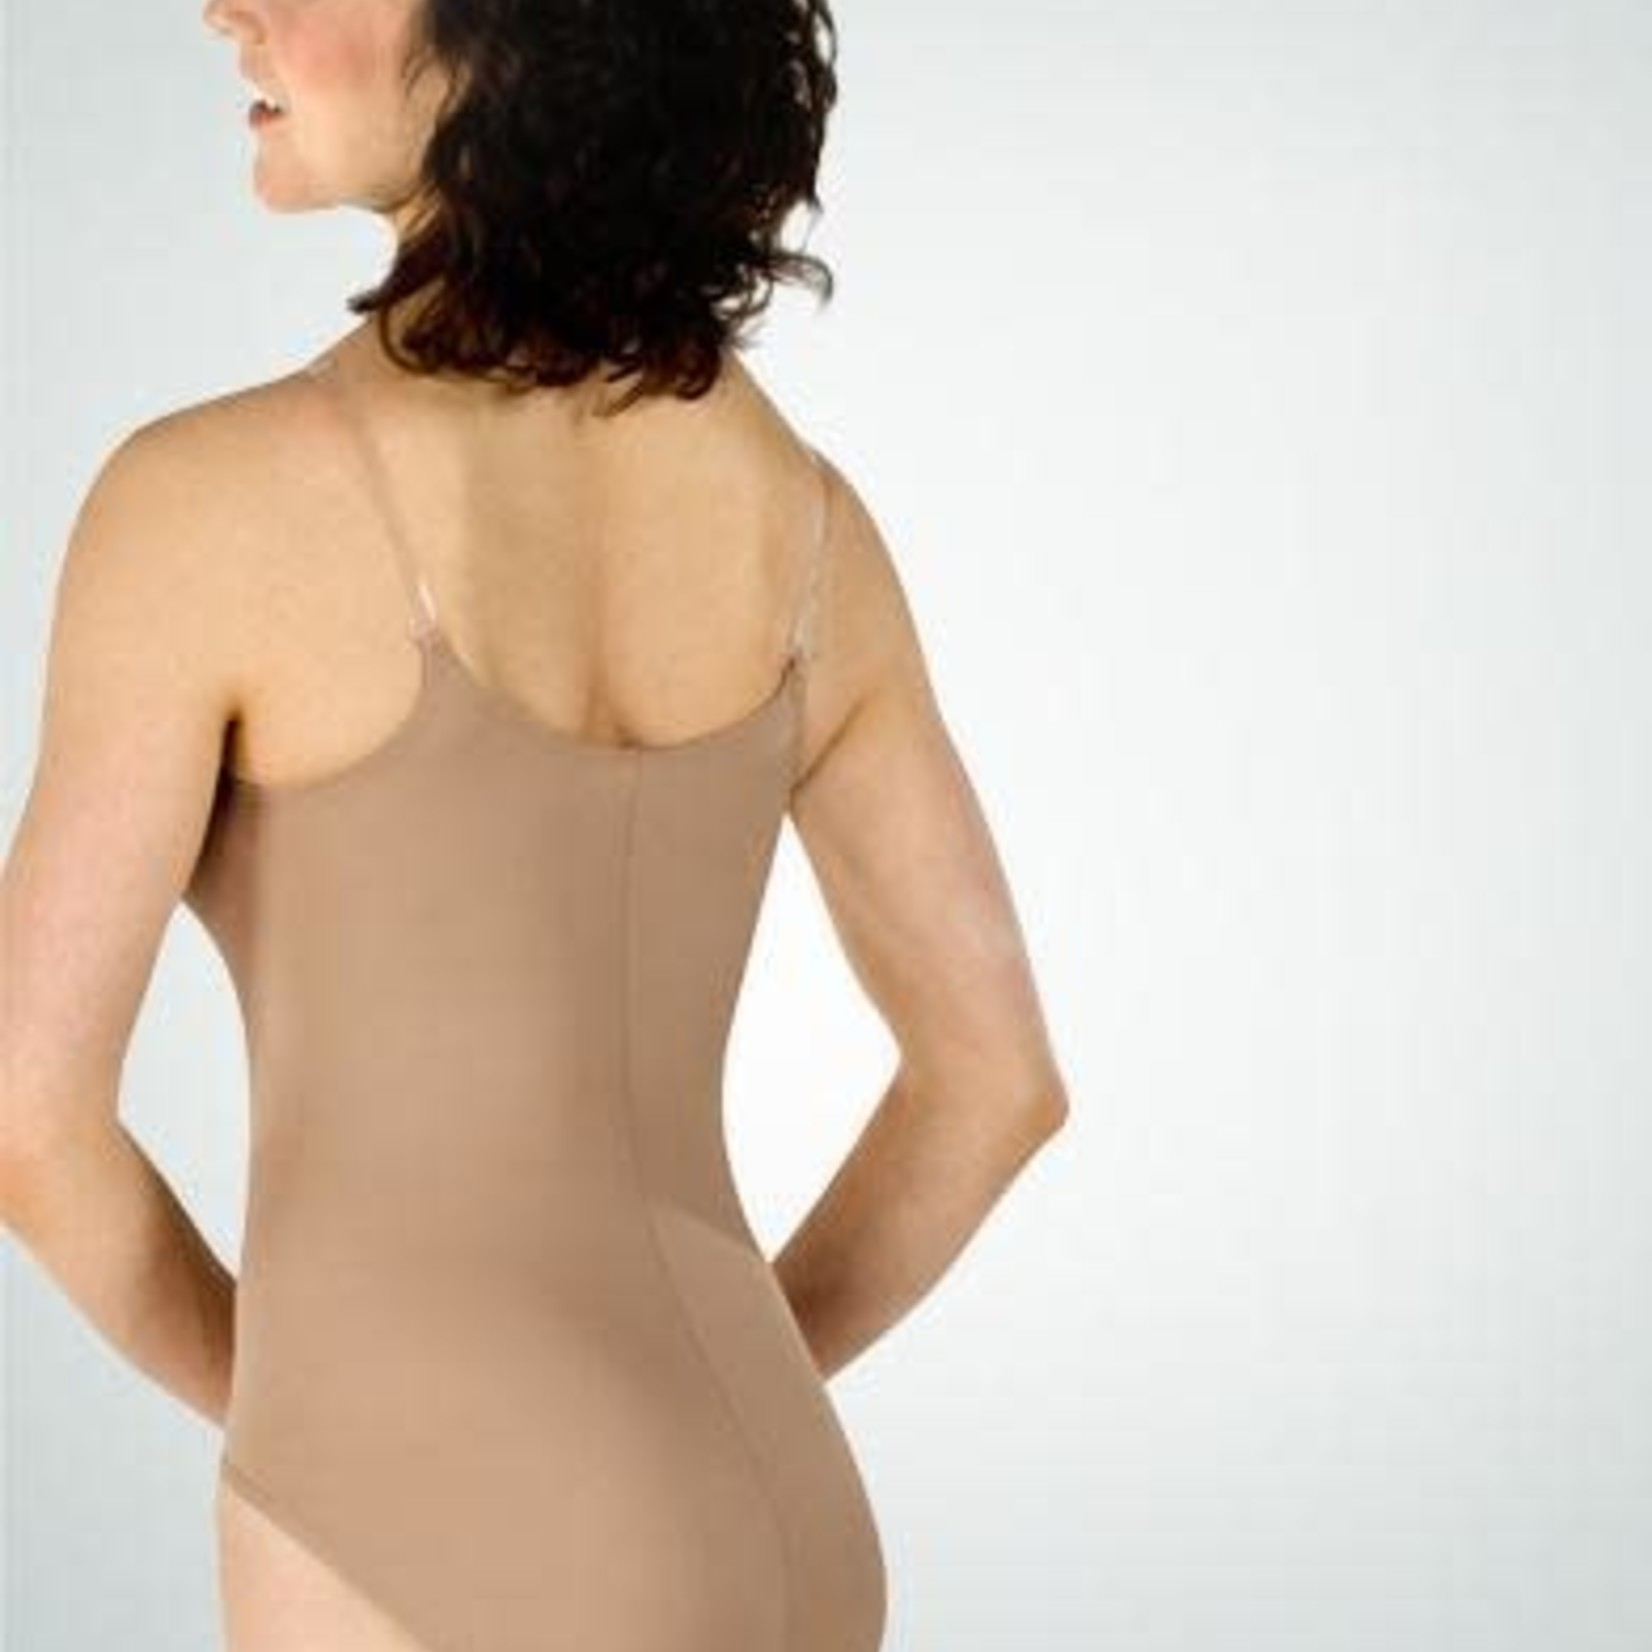 Body Wrappers Body Wrappers 260 Nude Adjustable Camisole Leotard